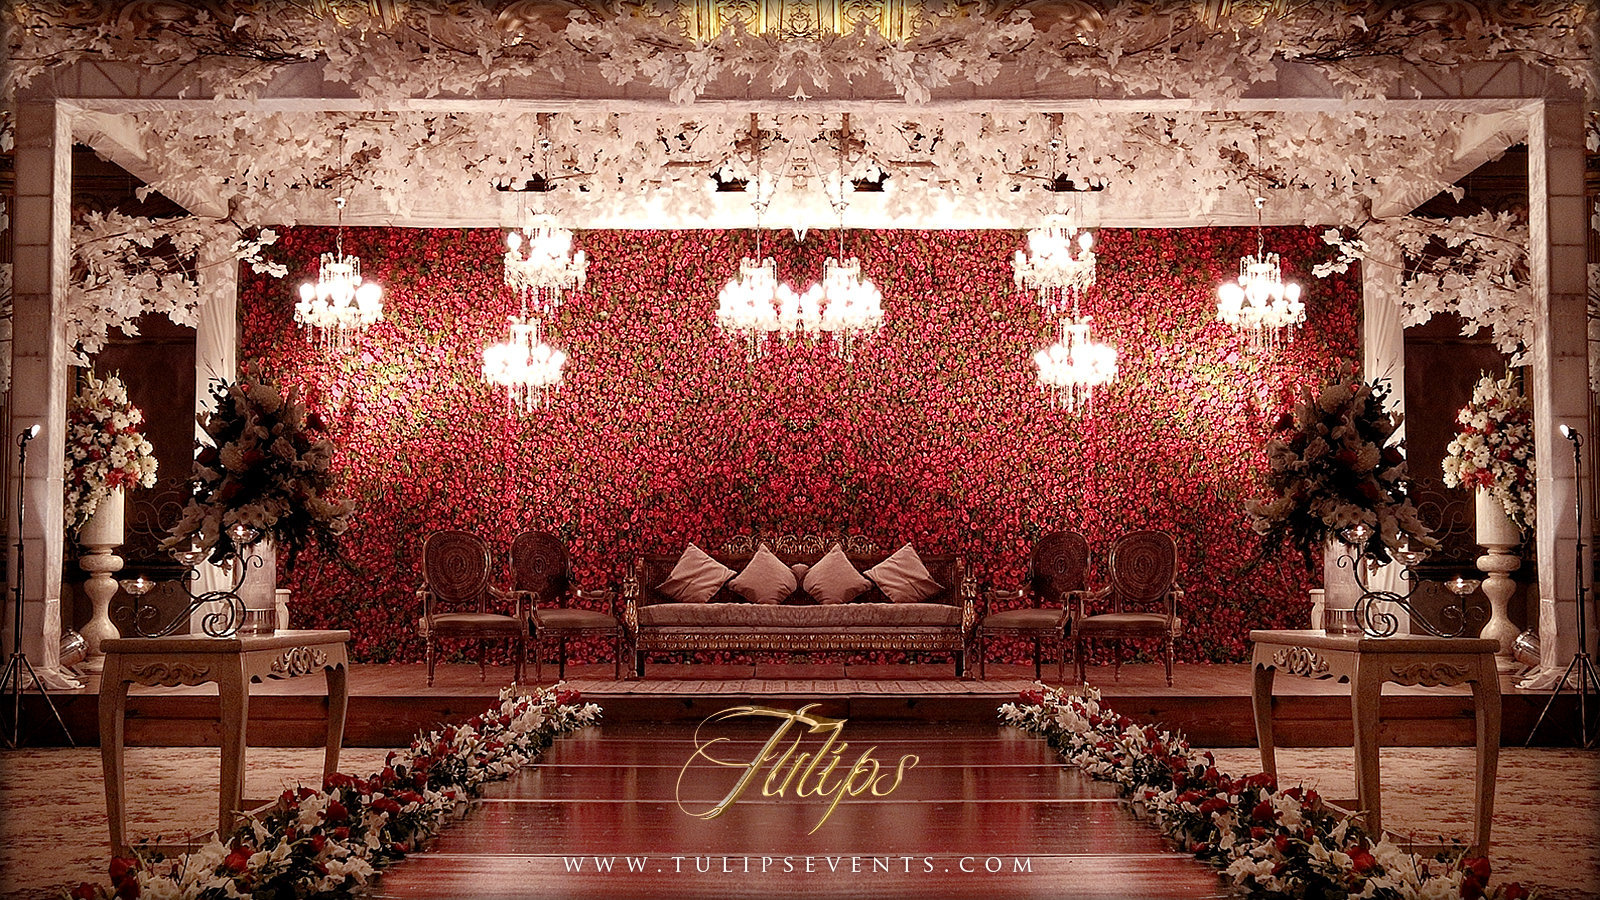 Top wedding stages of 2016 by tulips events management in for Auditorium stage decoration